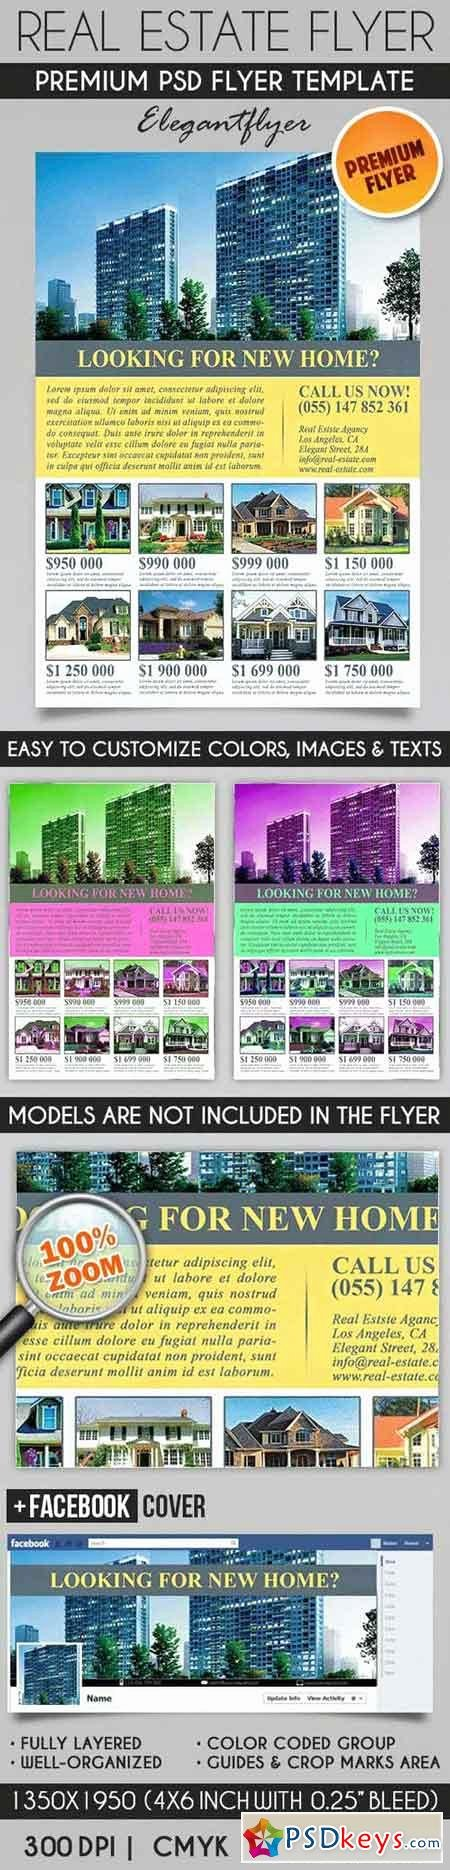 Real Estate Flyer Template Psd Inspirational Real Estate – Flyer Psd Template Cover Free